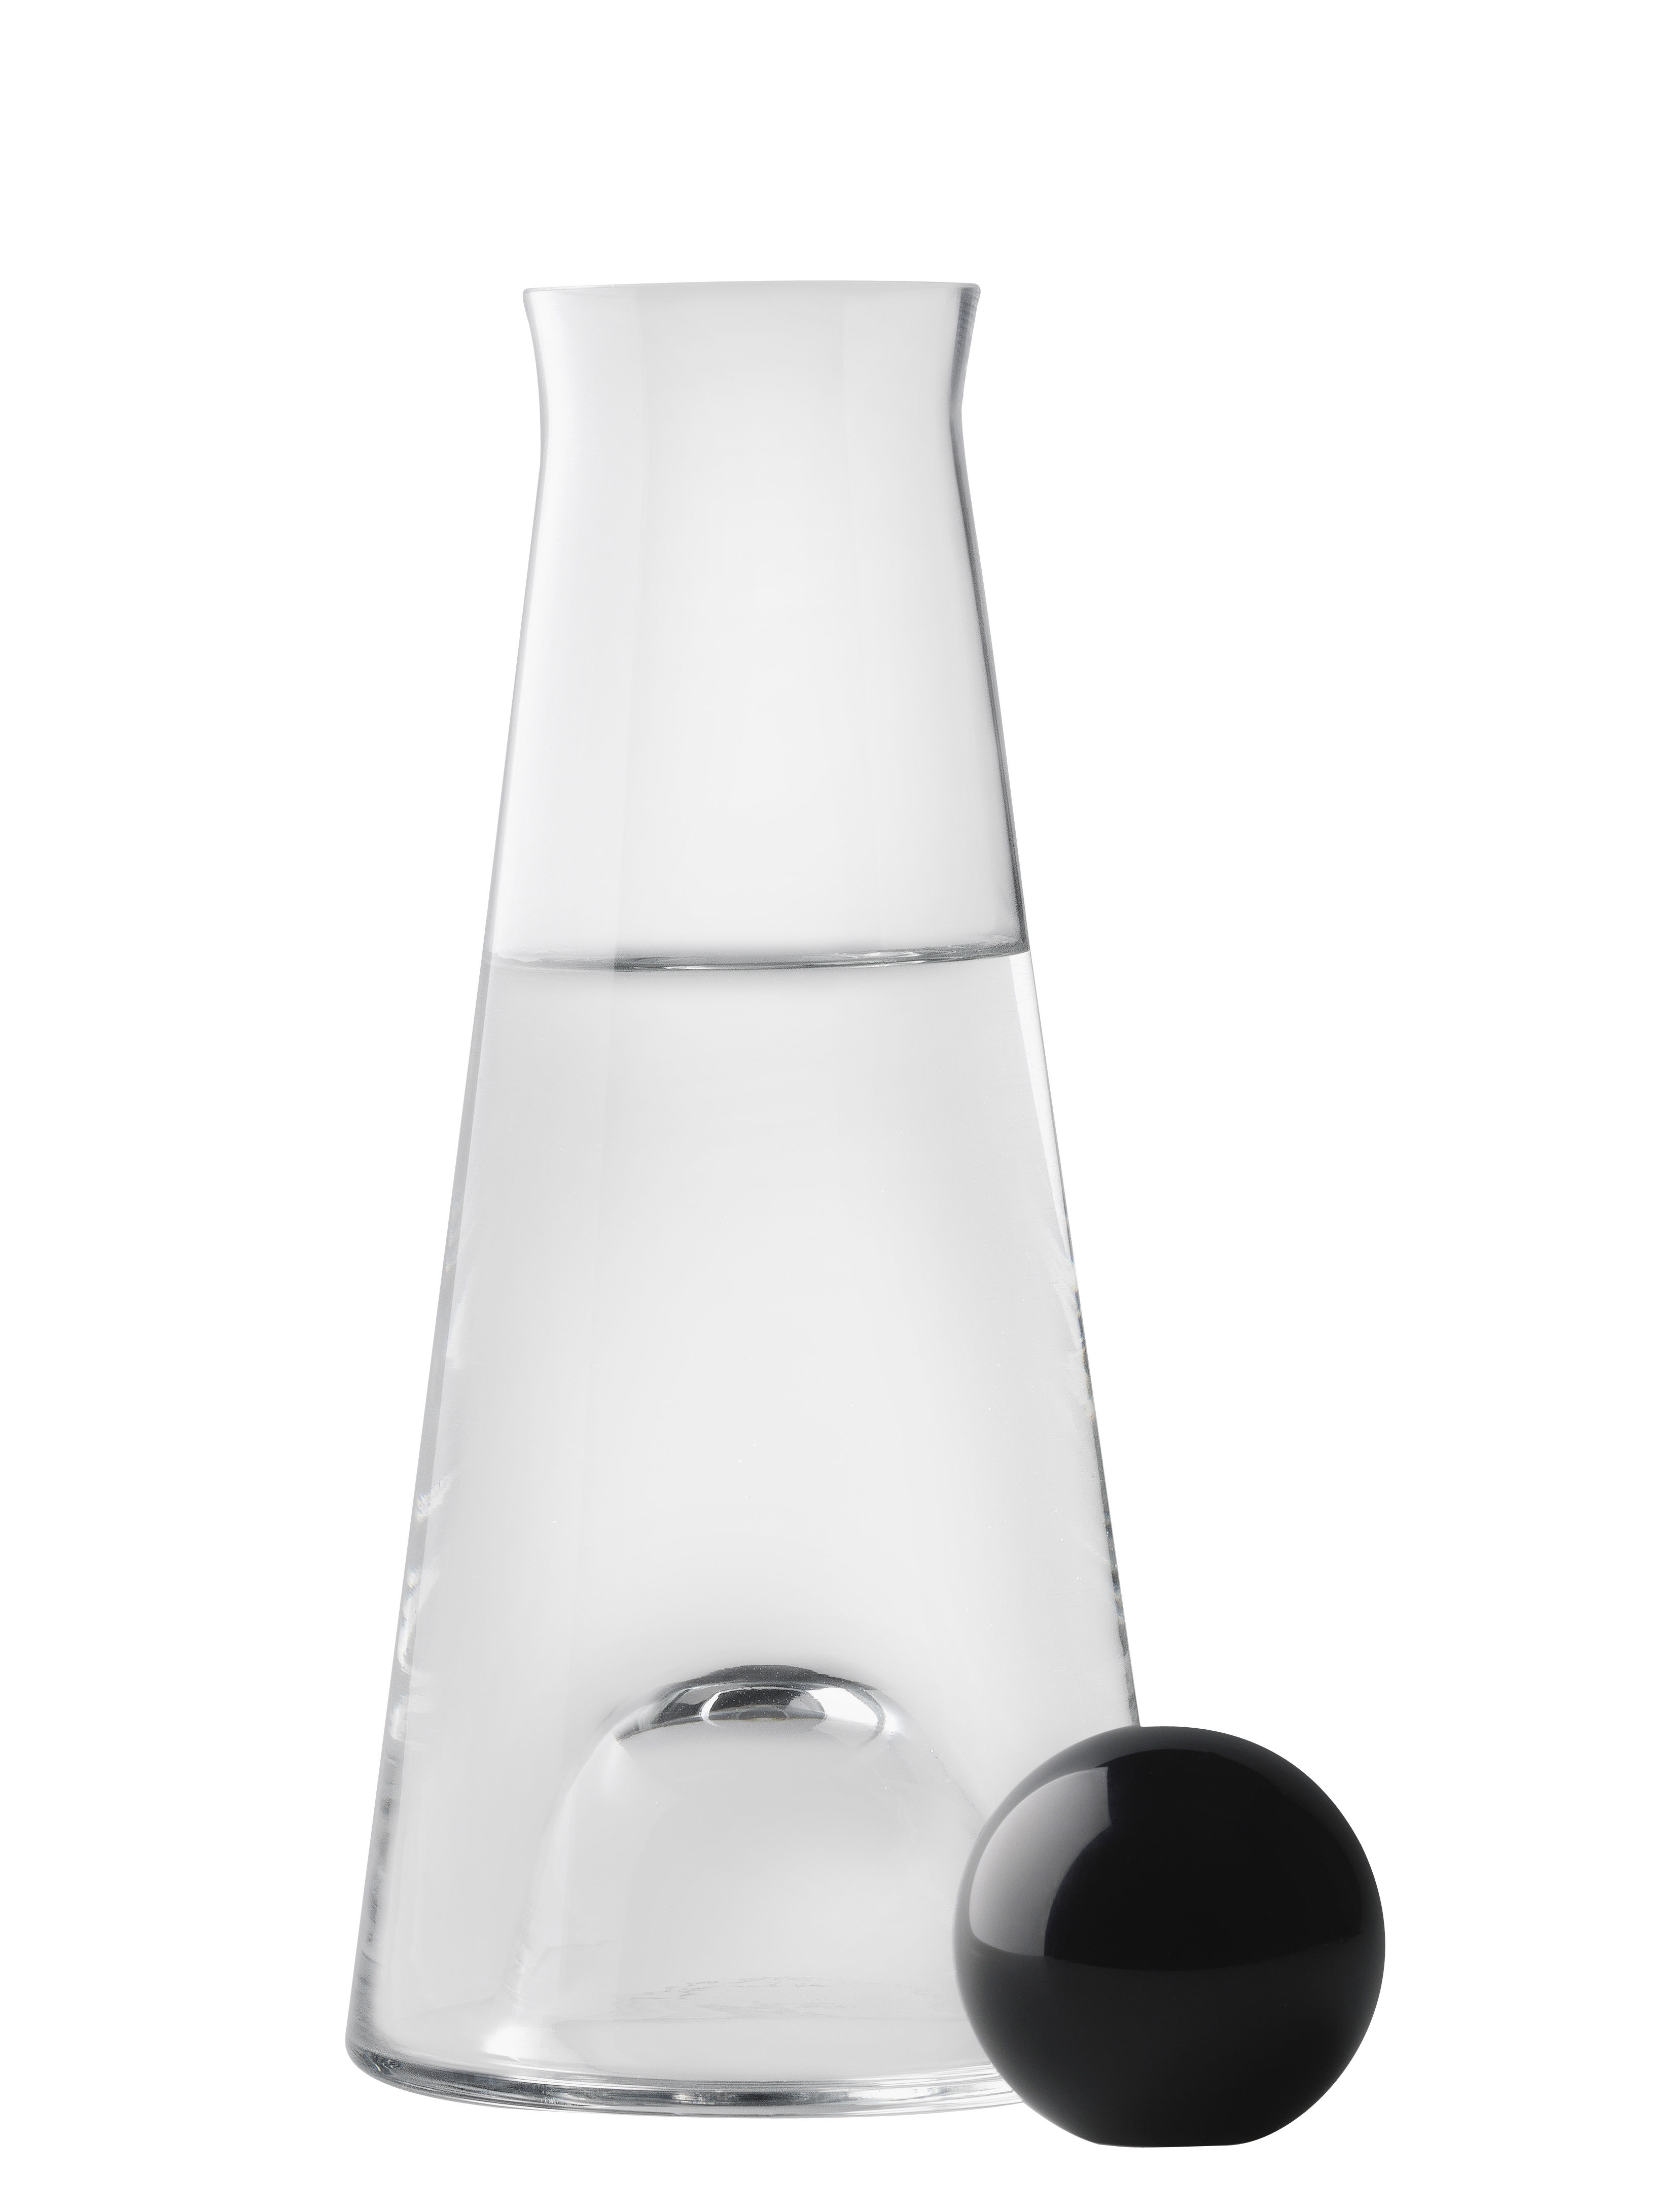 Tableware - Water Carafes & Wine Decanters - Fia Carafe - 1 L by Design House Stockholm - Clear / Black - Cristal, Glass